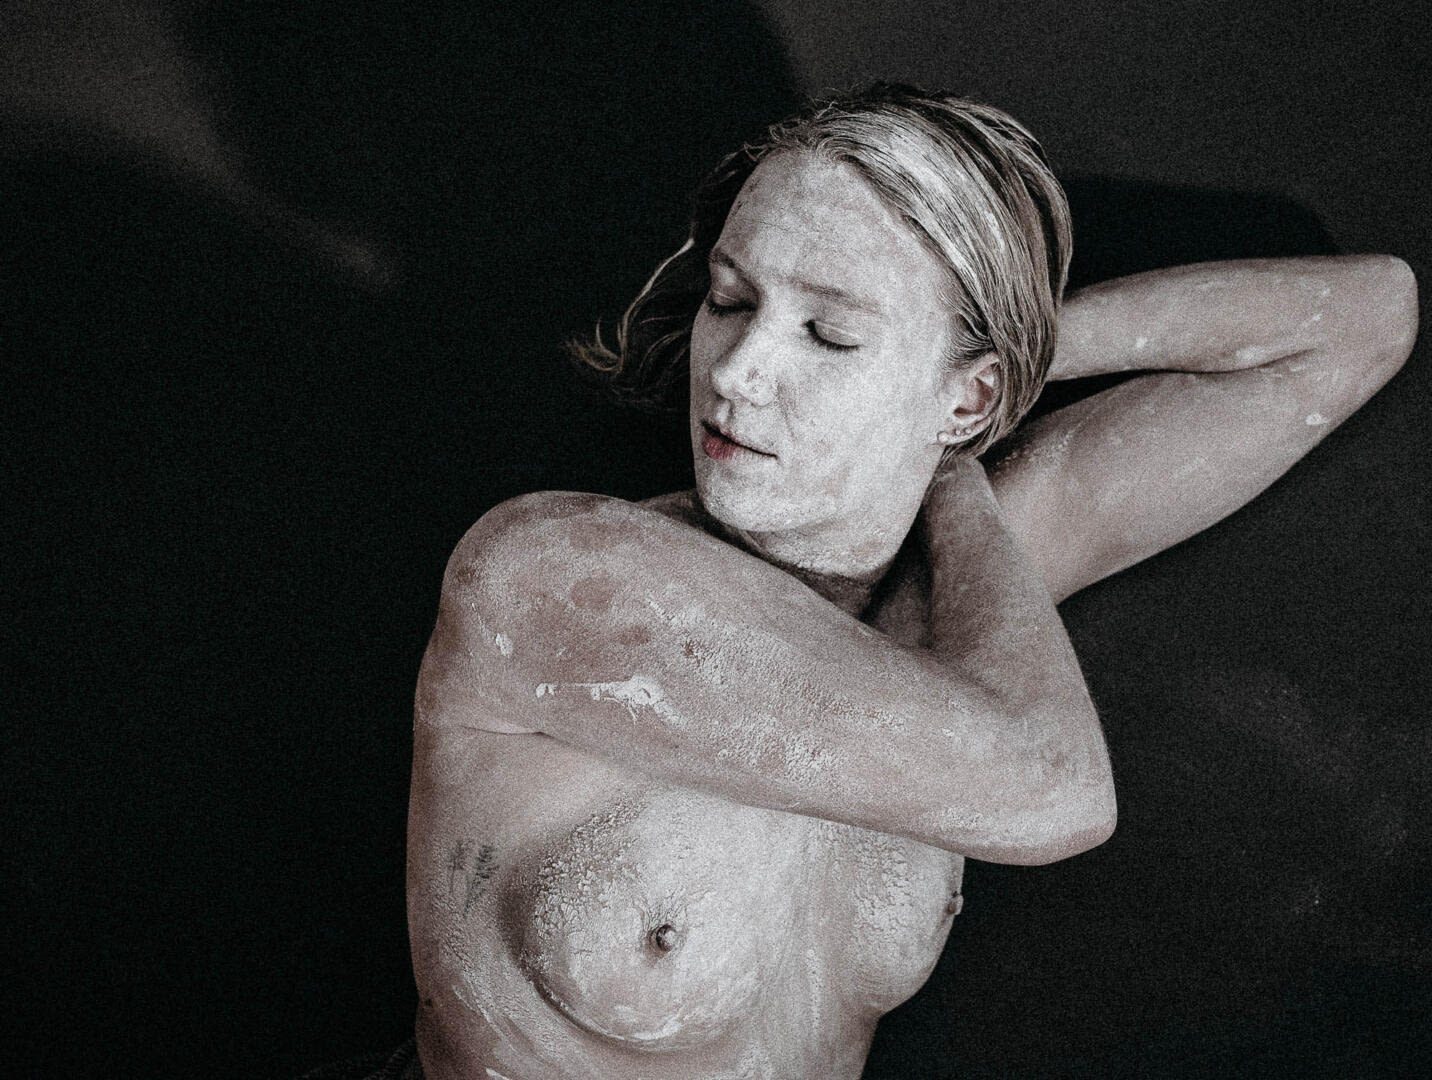 Aktfotografie, Fine-Art Nude Series: feel - Einsamkeit 3